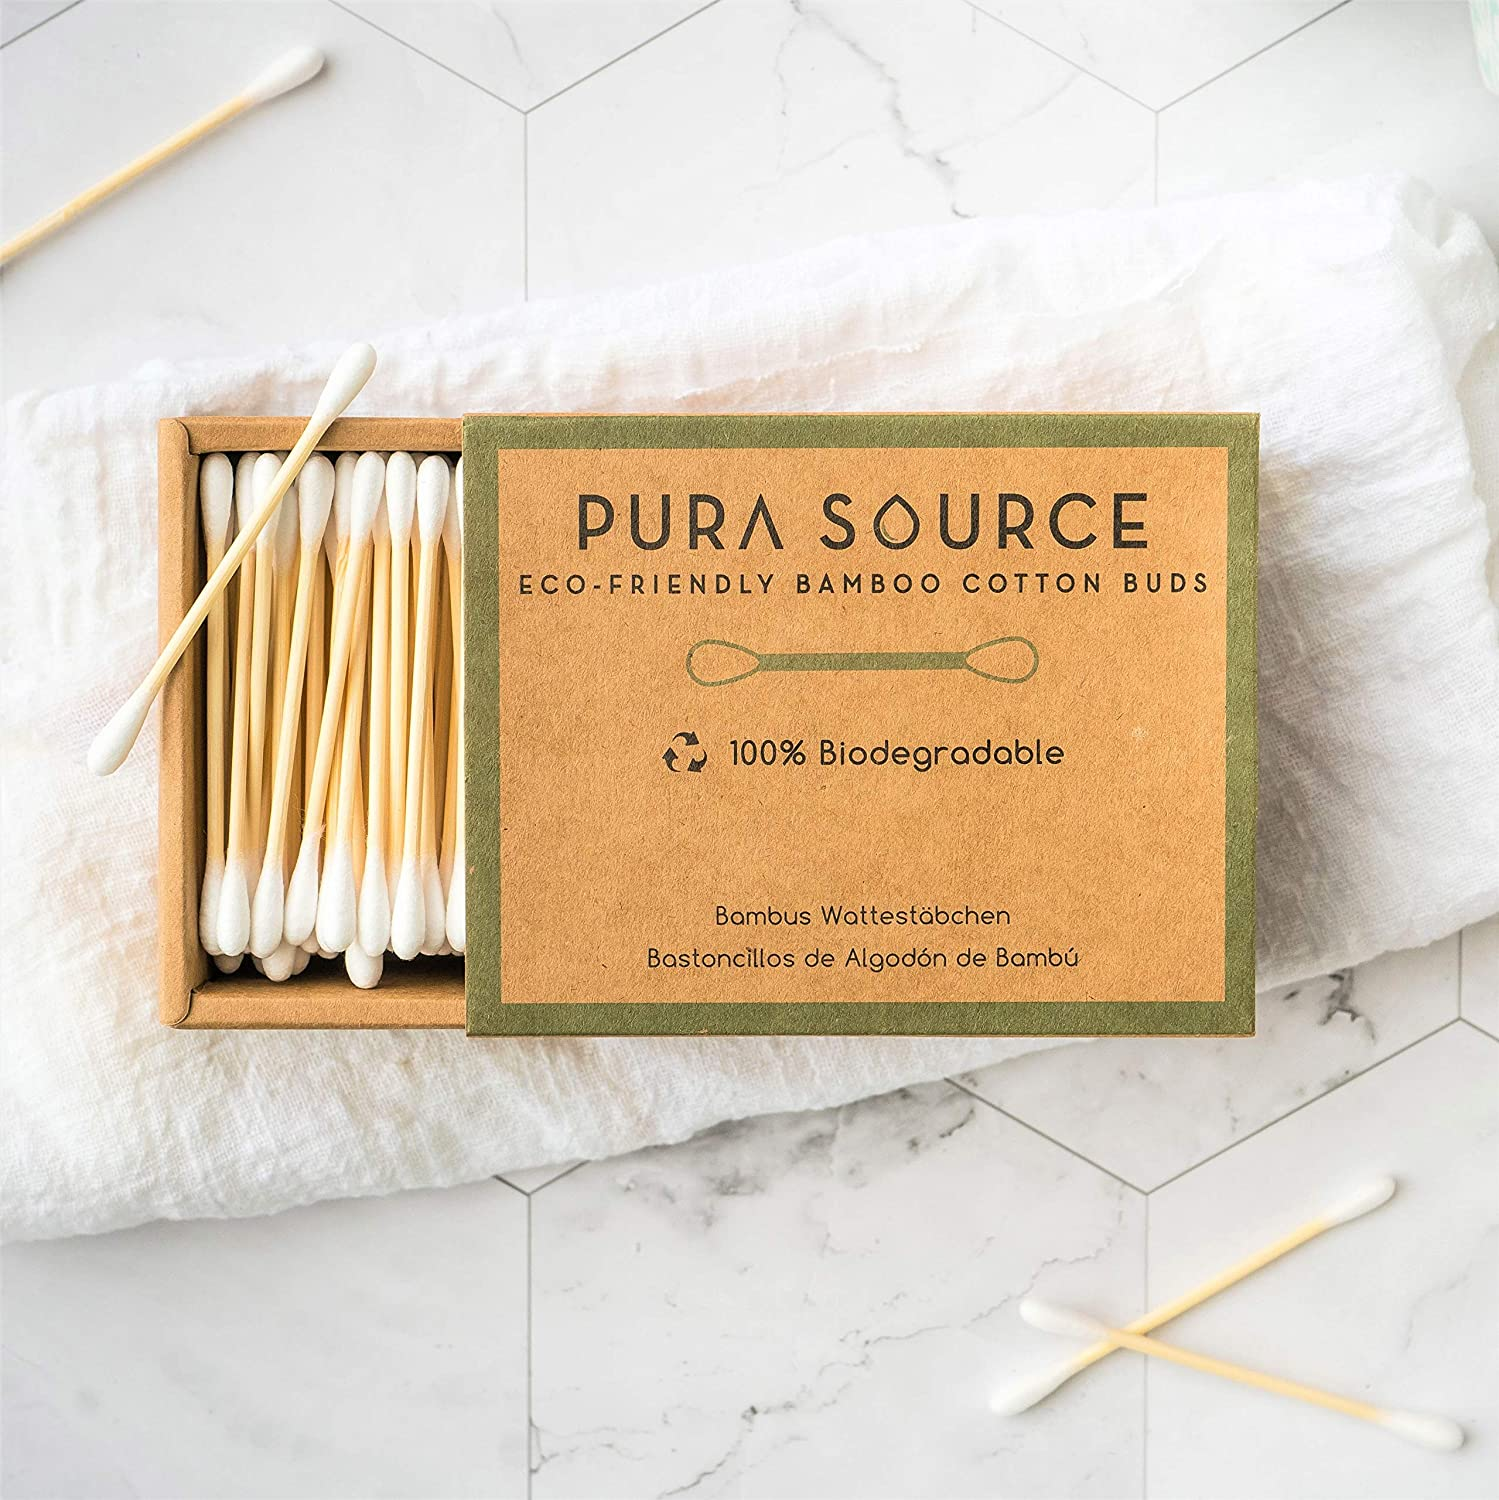 Bamboo Cotton Buds by Pura Source : 800 Biodegradable Organic Buds : Alternative to Single-Use Plastics : Easy-Slide Biodegradable Kraft Boxes : Eco-Friendly Q Tips